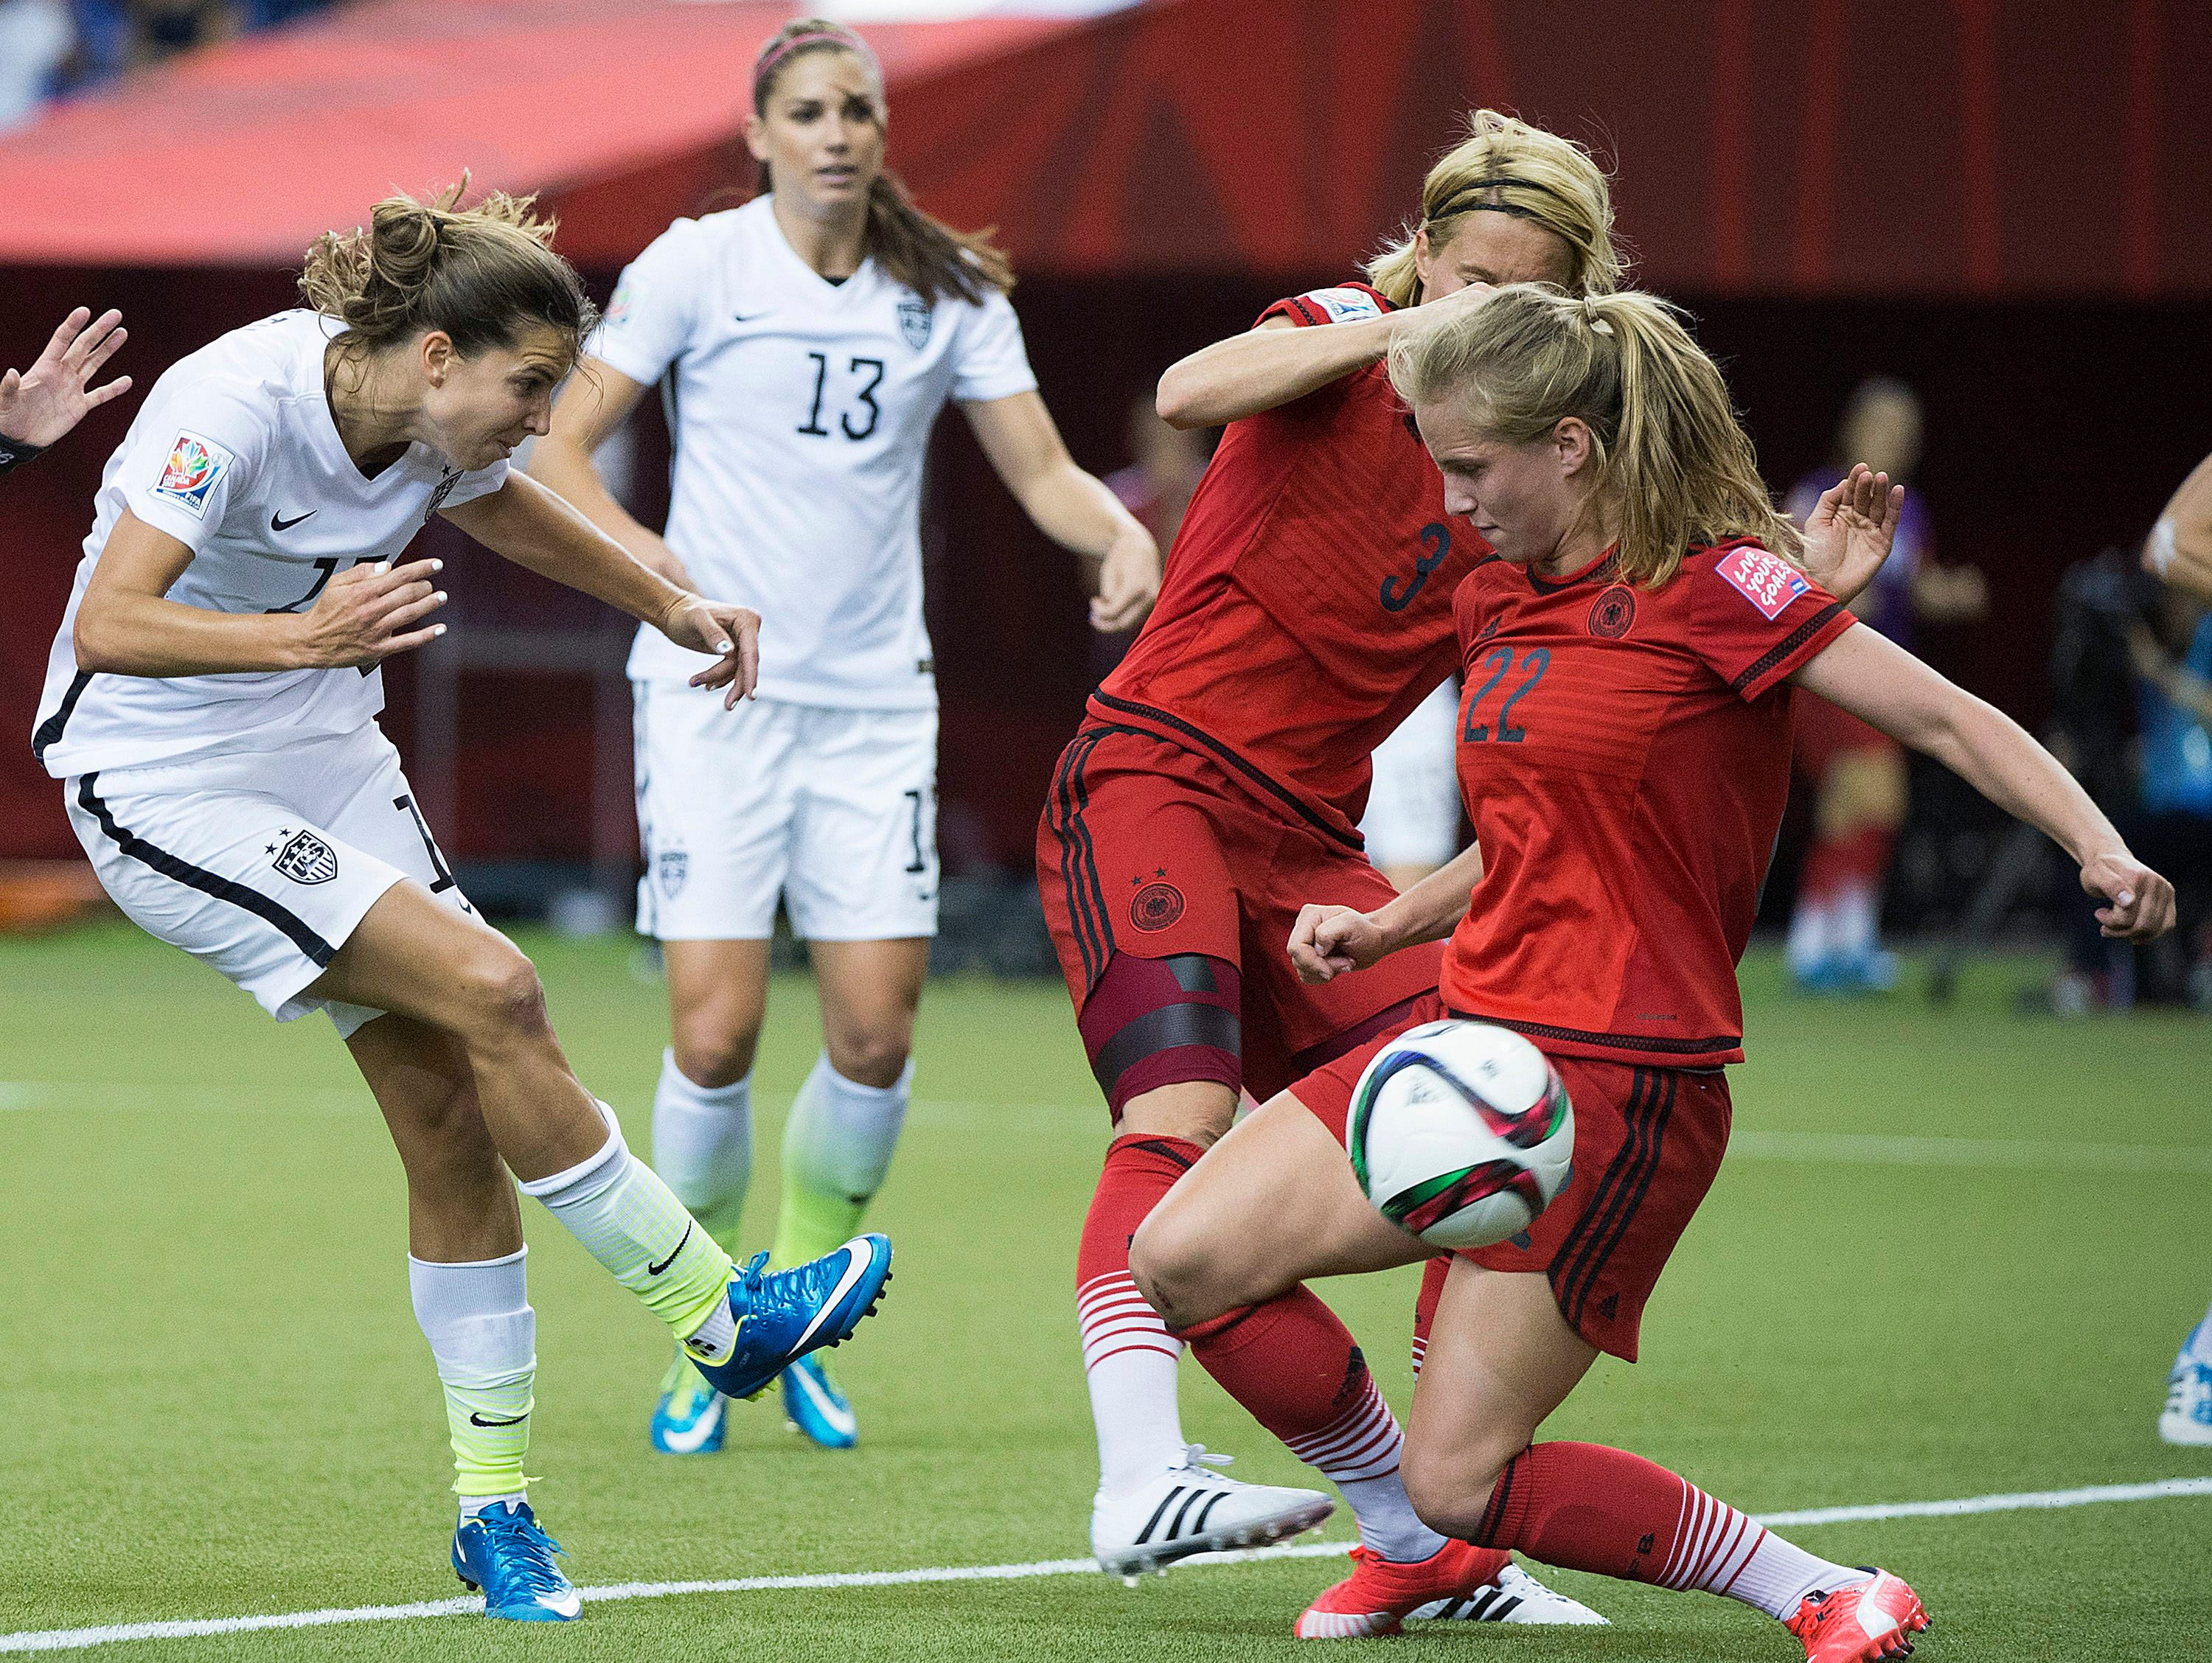 United States' Tobin Heath, left, has a shot blocked by Germany's Tabea Kemme (22) during the first half of a semifinal in the Women's World Cup soccer tournament, Tuesday, June 30, 2015, in Montreal, Canada. (Graham Hughes/The Canadian Press via AP)